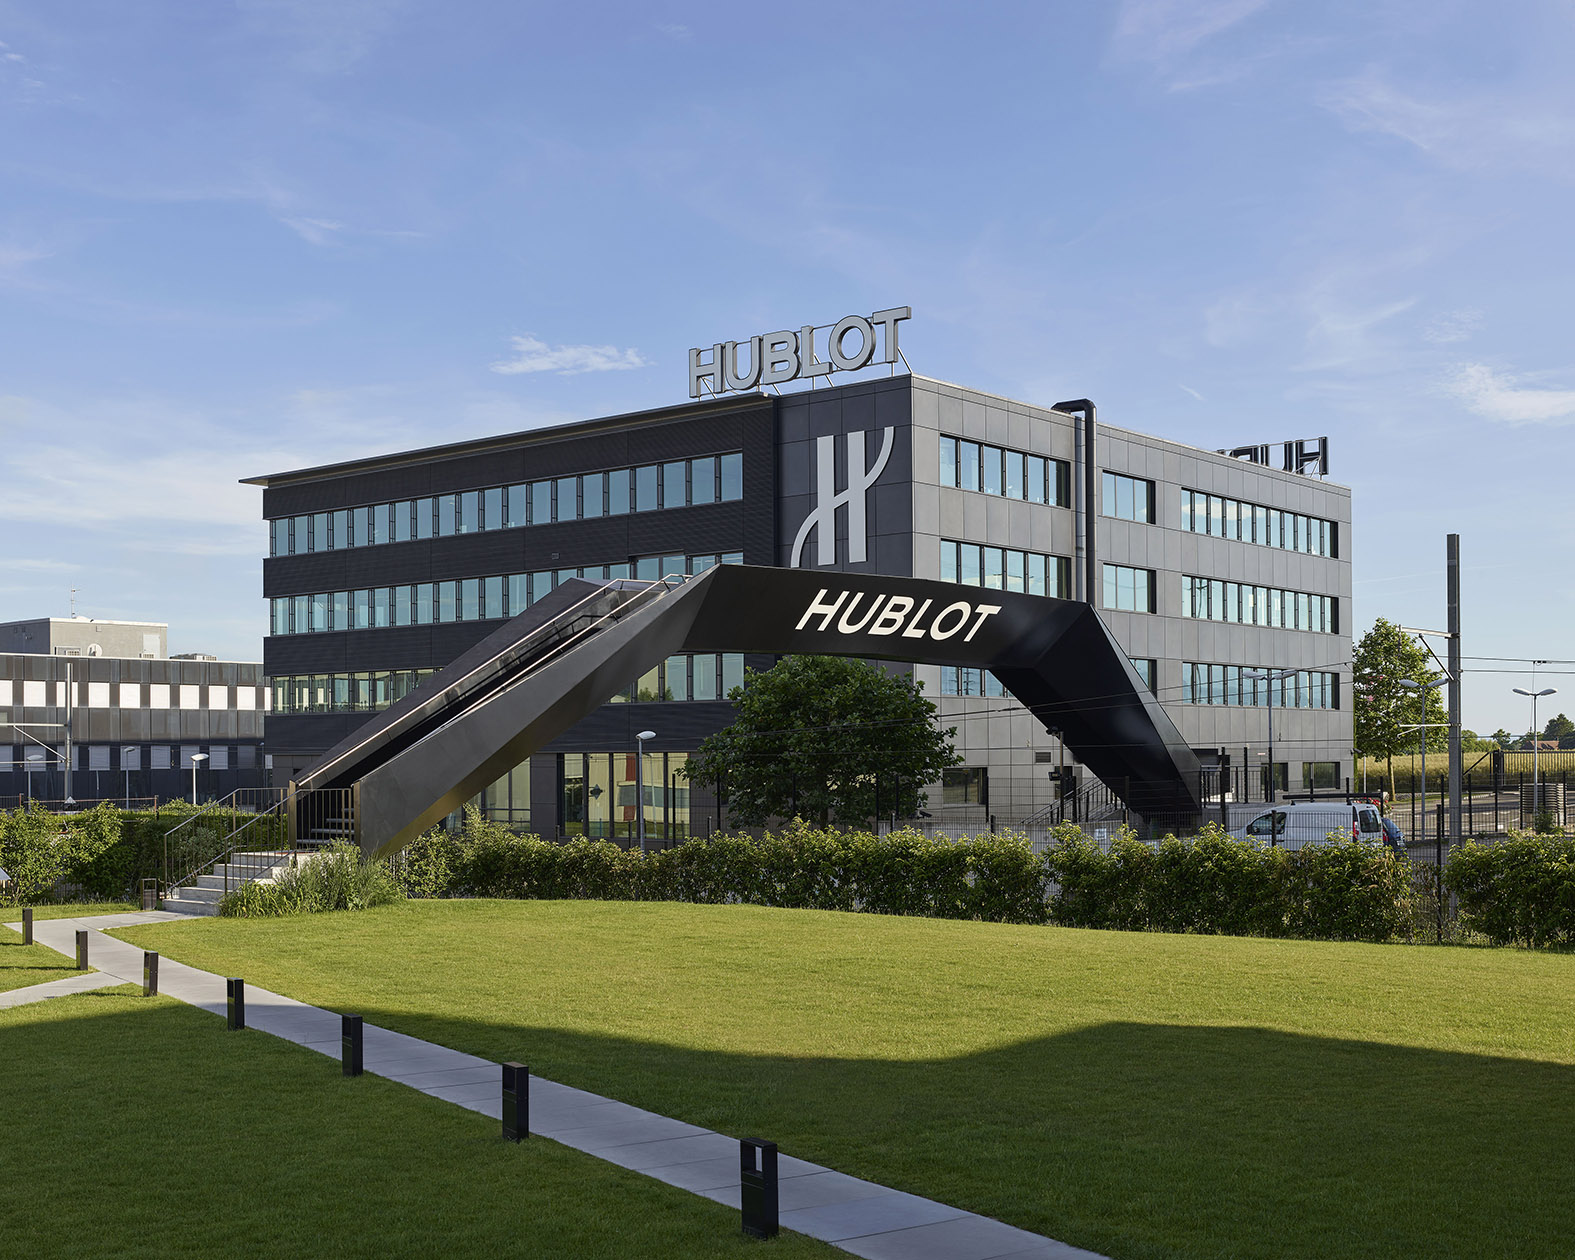 Hublot's Manufacture in Nyon. The brand just announced that it will be shutting down operations indefinitely until the coronavirus situation improves. - www.revolution.watch